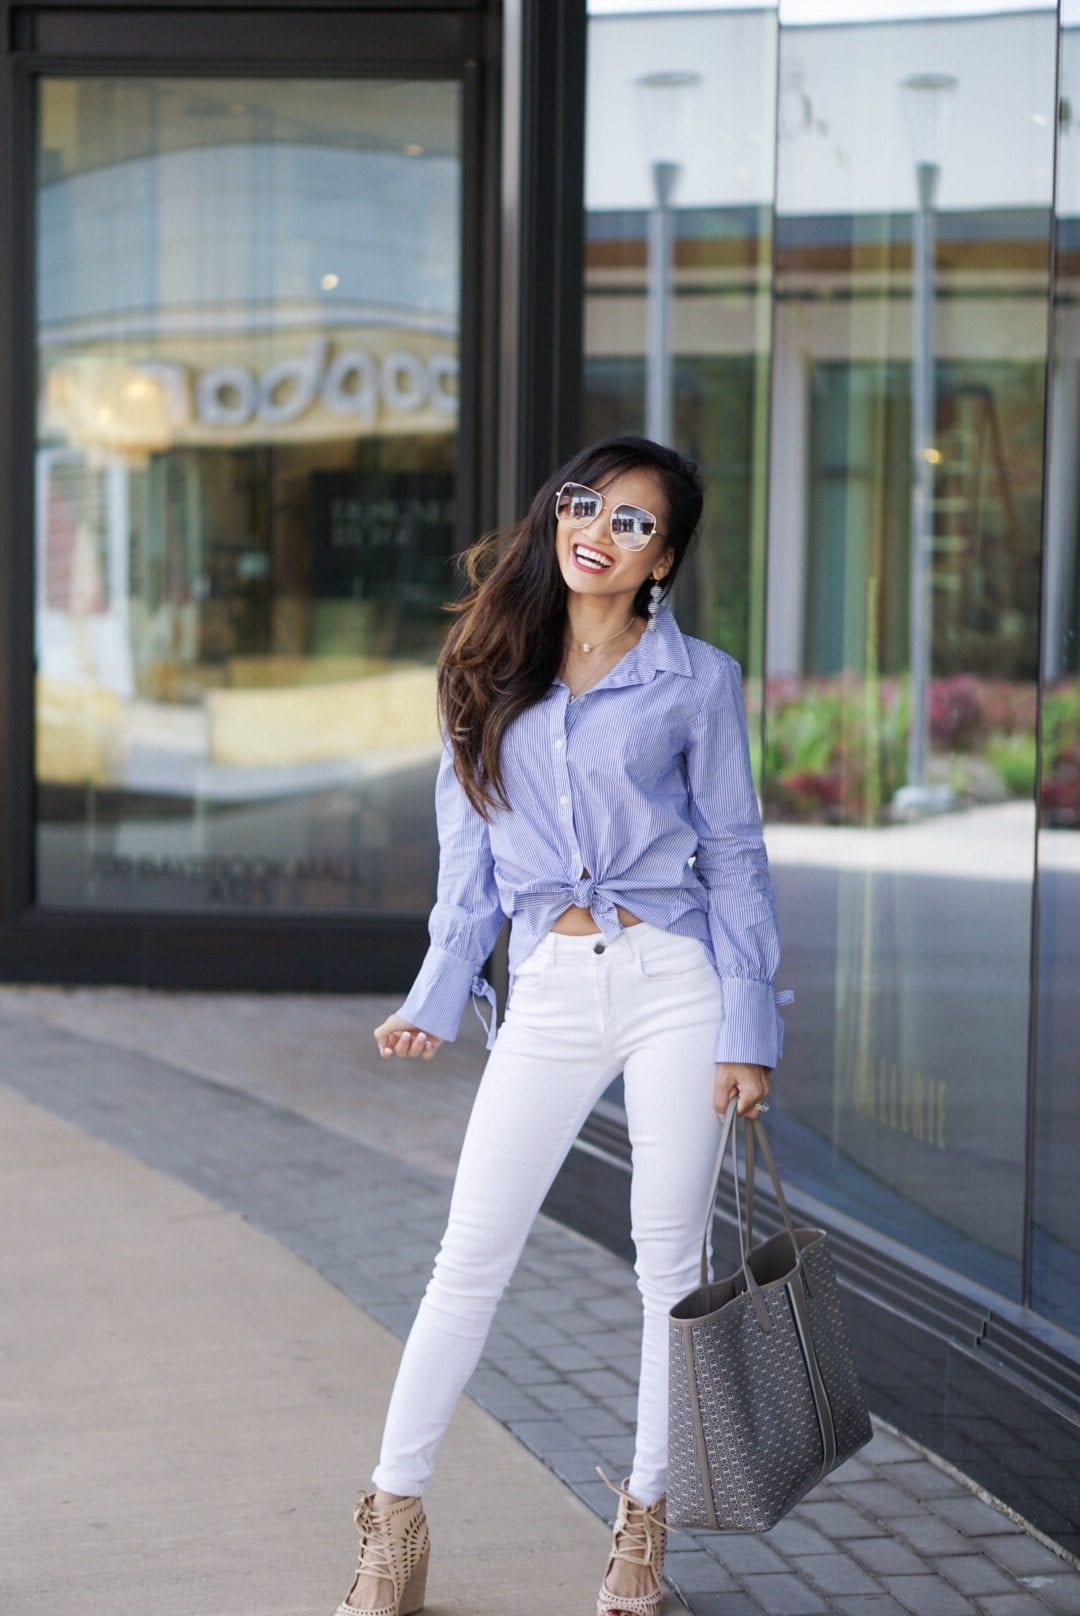 BLUE AND WHITE STRIPED BUTTON DOWN, WHITE PANTS, SPRING LOOK, SPRING STYLE, SANCTUARY TOP, MOM STYLE, MOM FASHION,JEFFREY CAMPBELL WEDGES, Tory burch gemini link tote